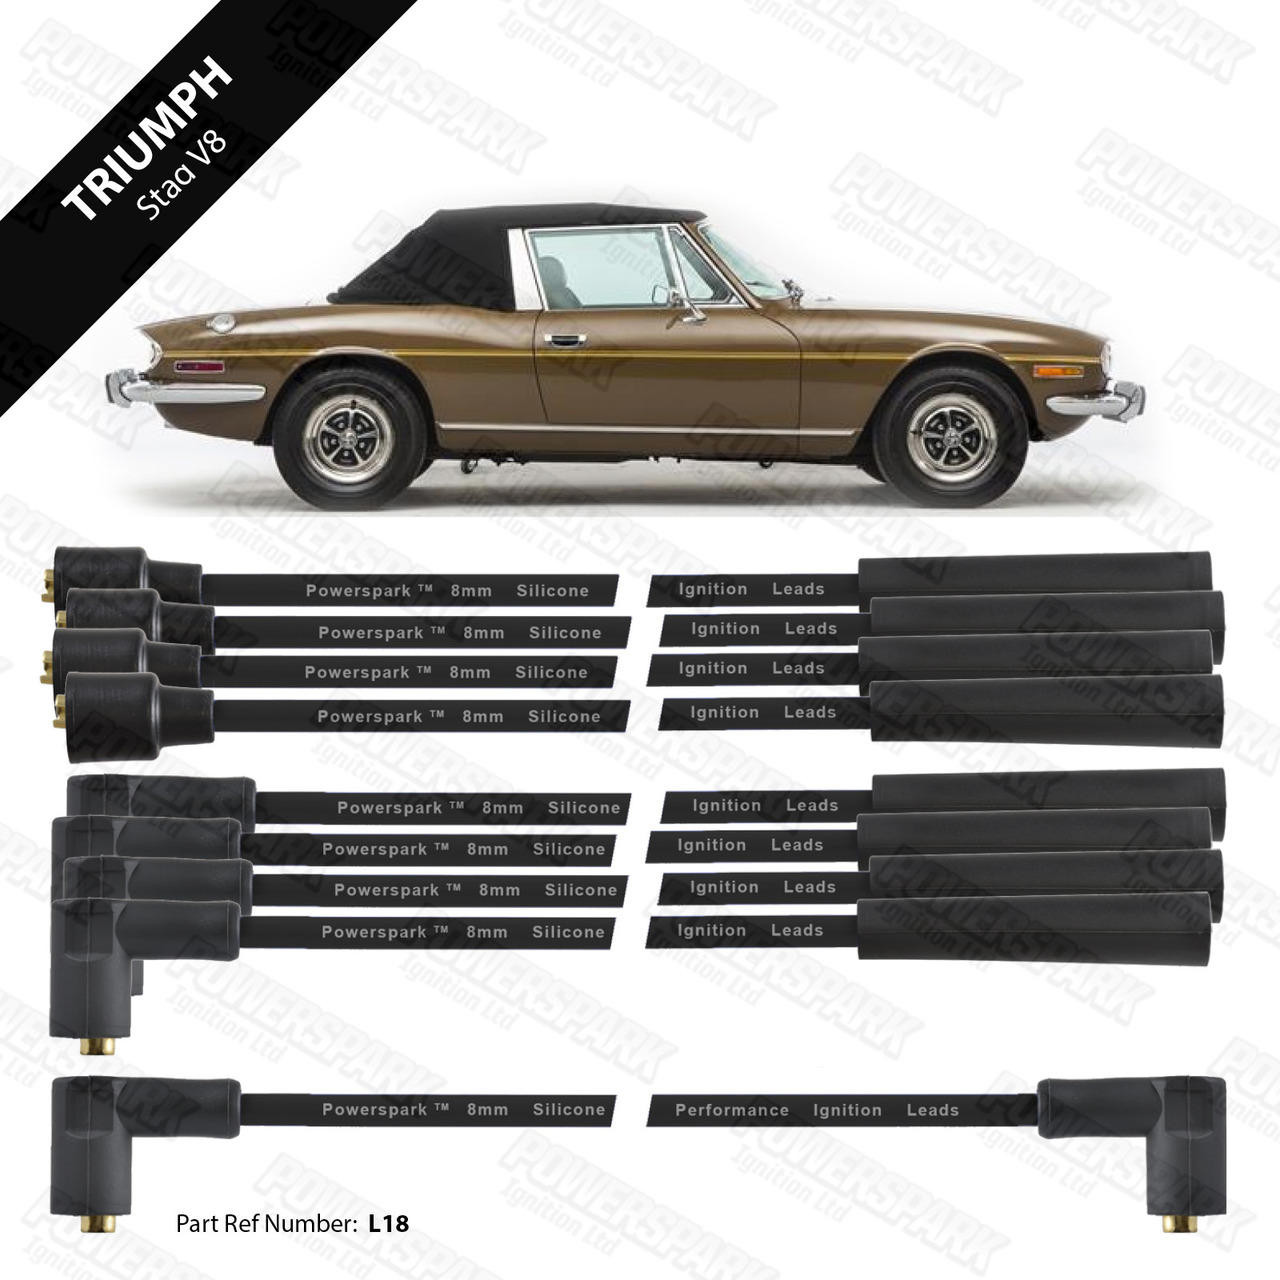 Powerspark Triumph Stag 3.0 V8 HT Leads 8mm Double Silicone